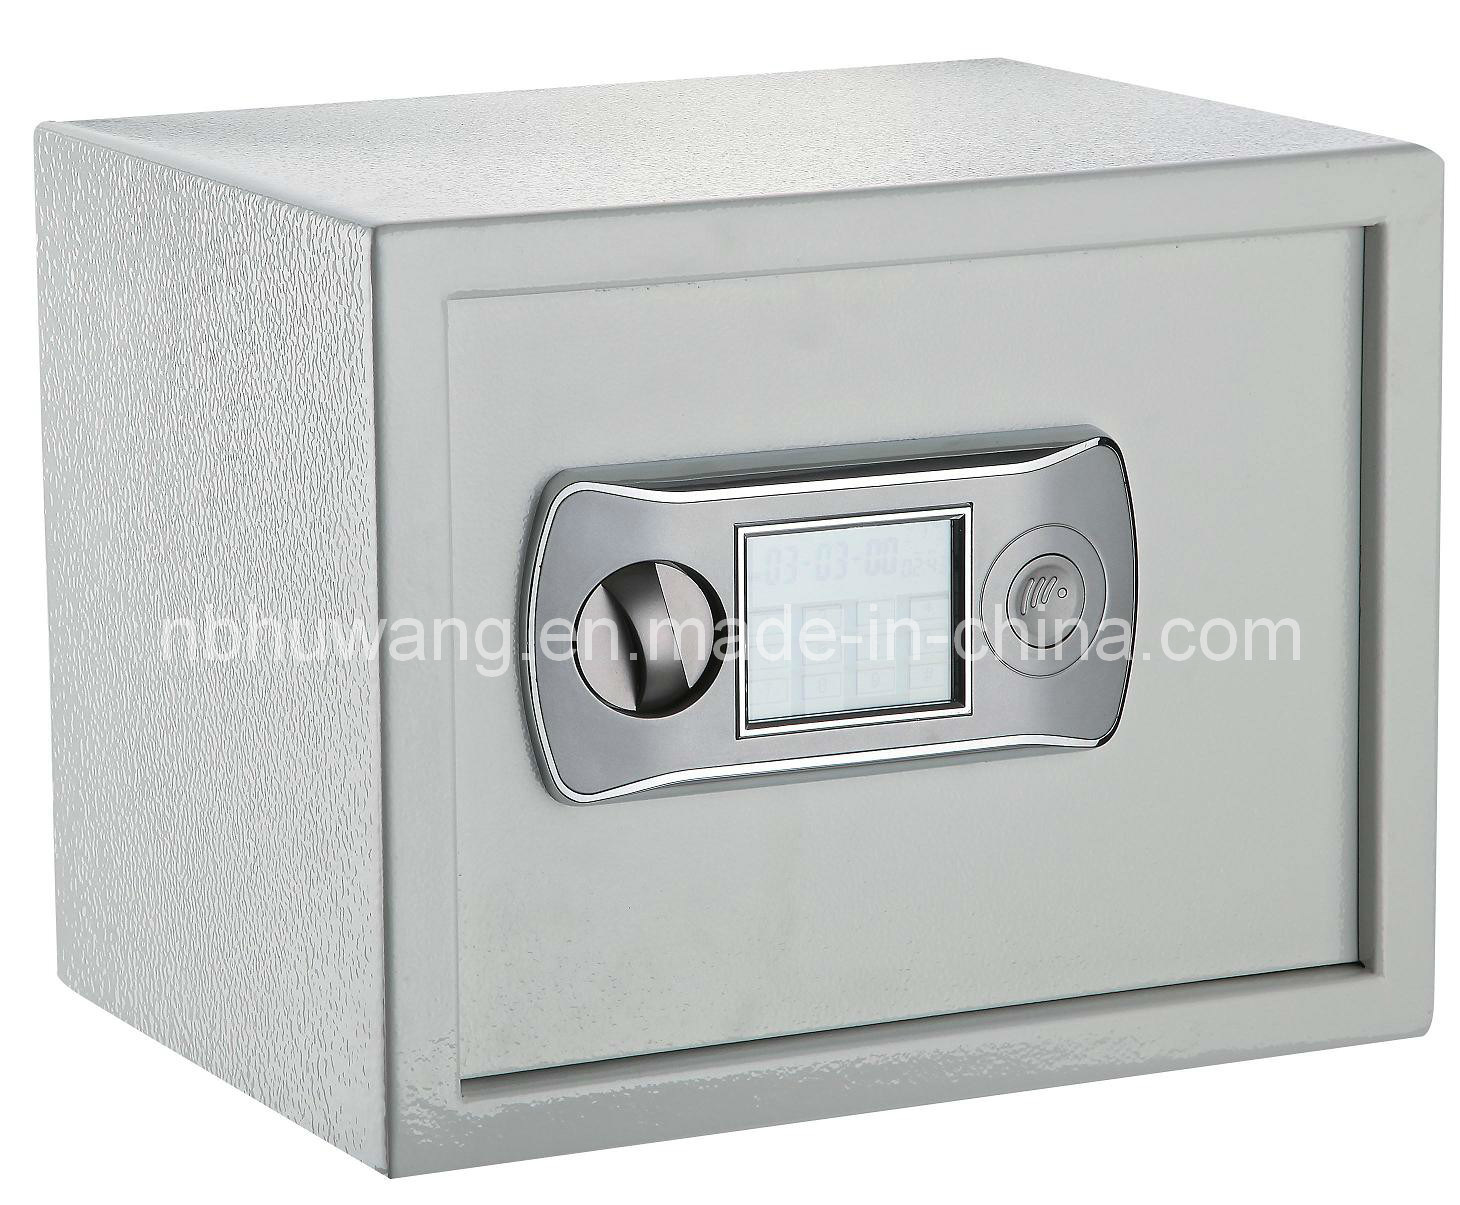 Touch Screen Electronic Safe for Home and Hotel Use